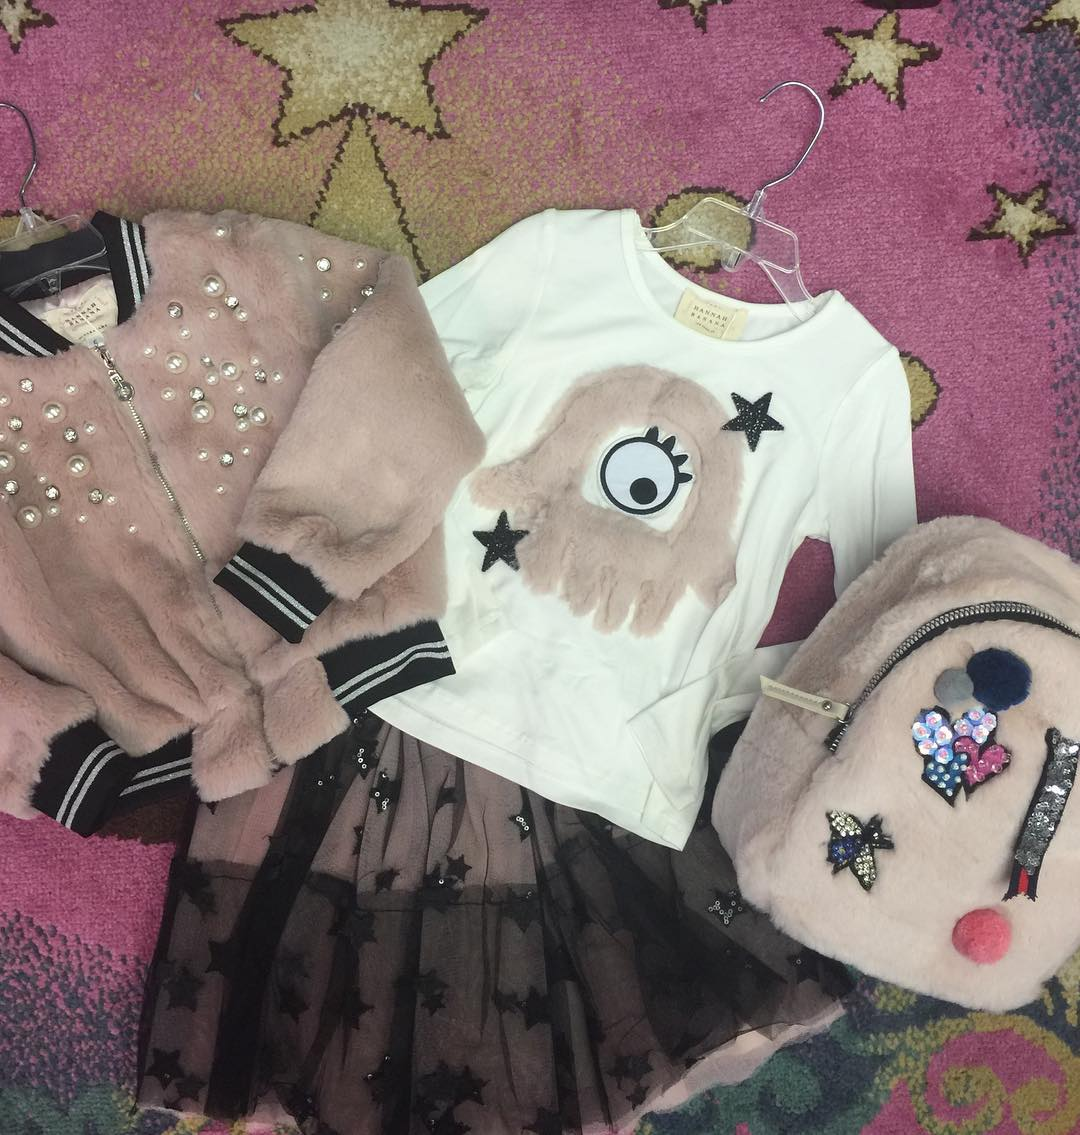 gils fashionable outfit from Frog n' Prince